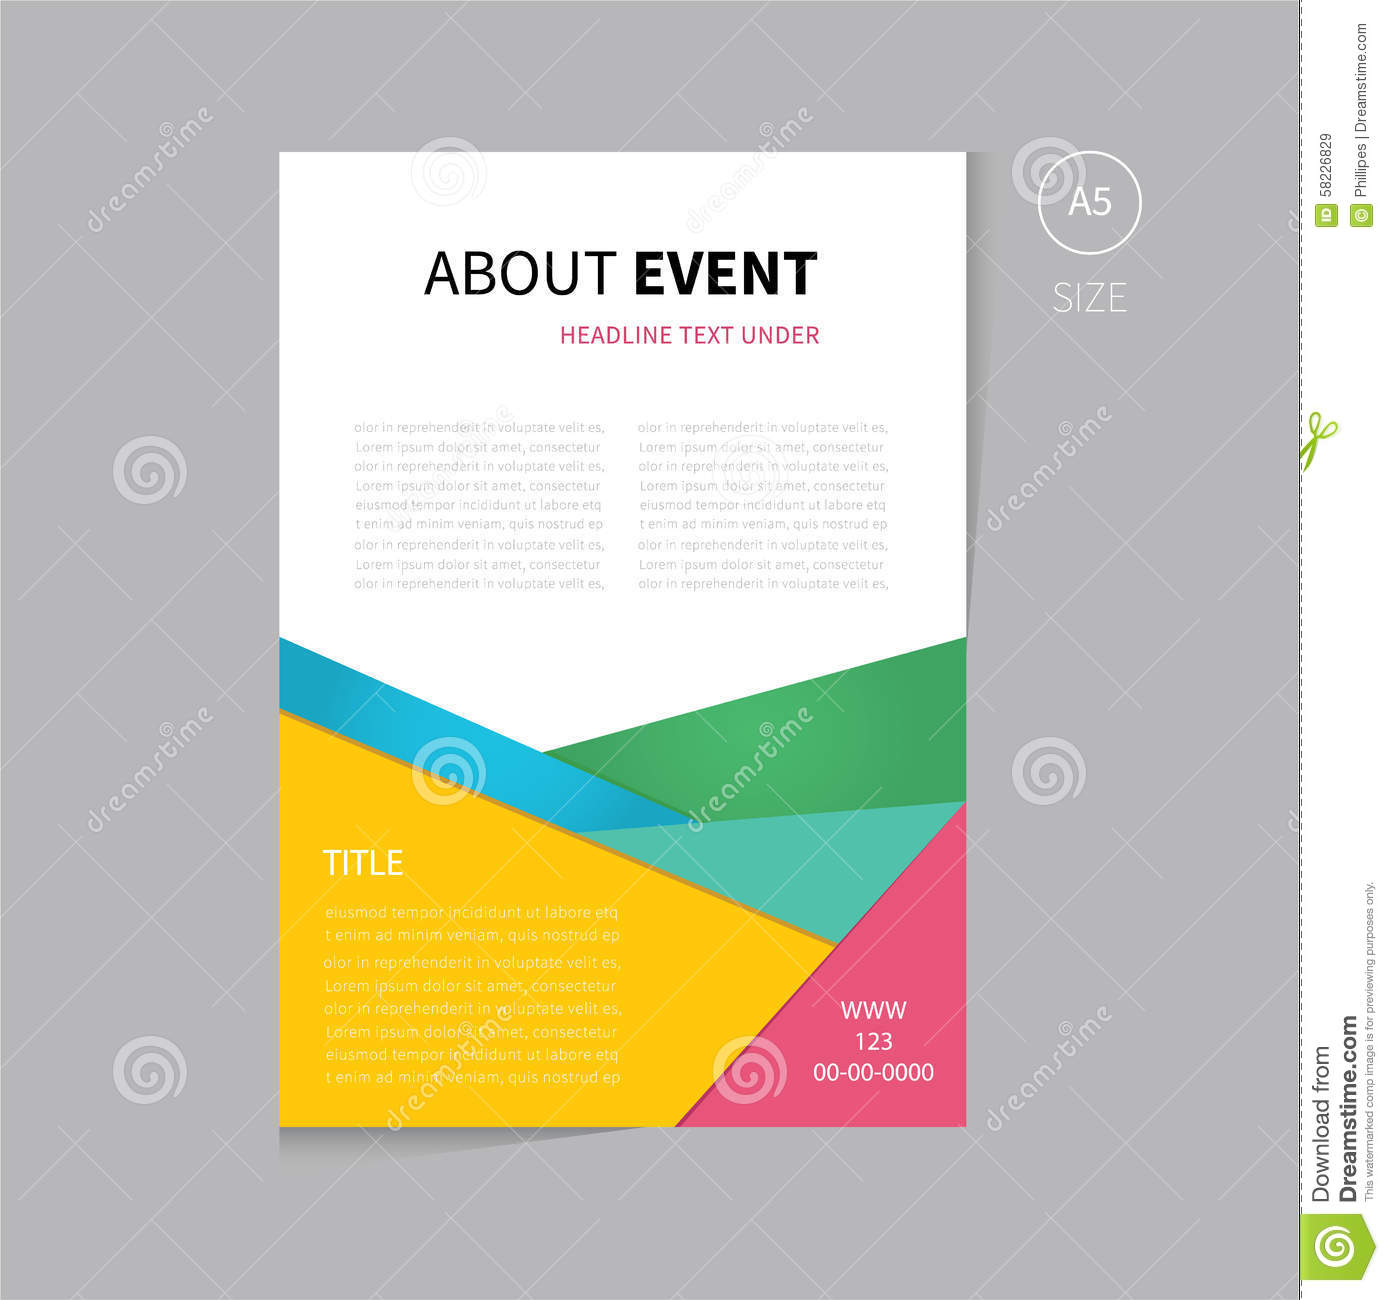 Vector Event Brochure Flyer Template Design A5 Size Vector – Event Brochure Template